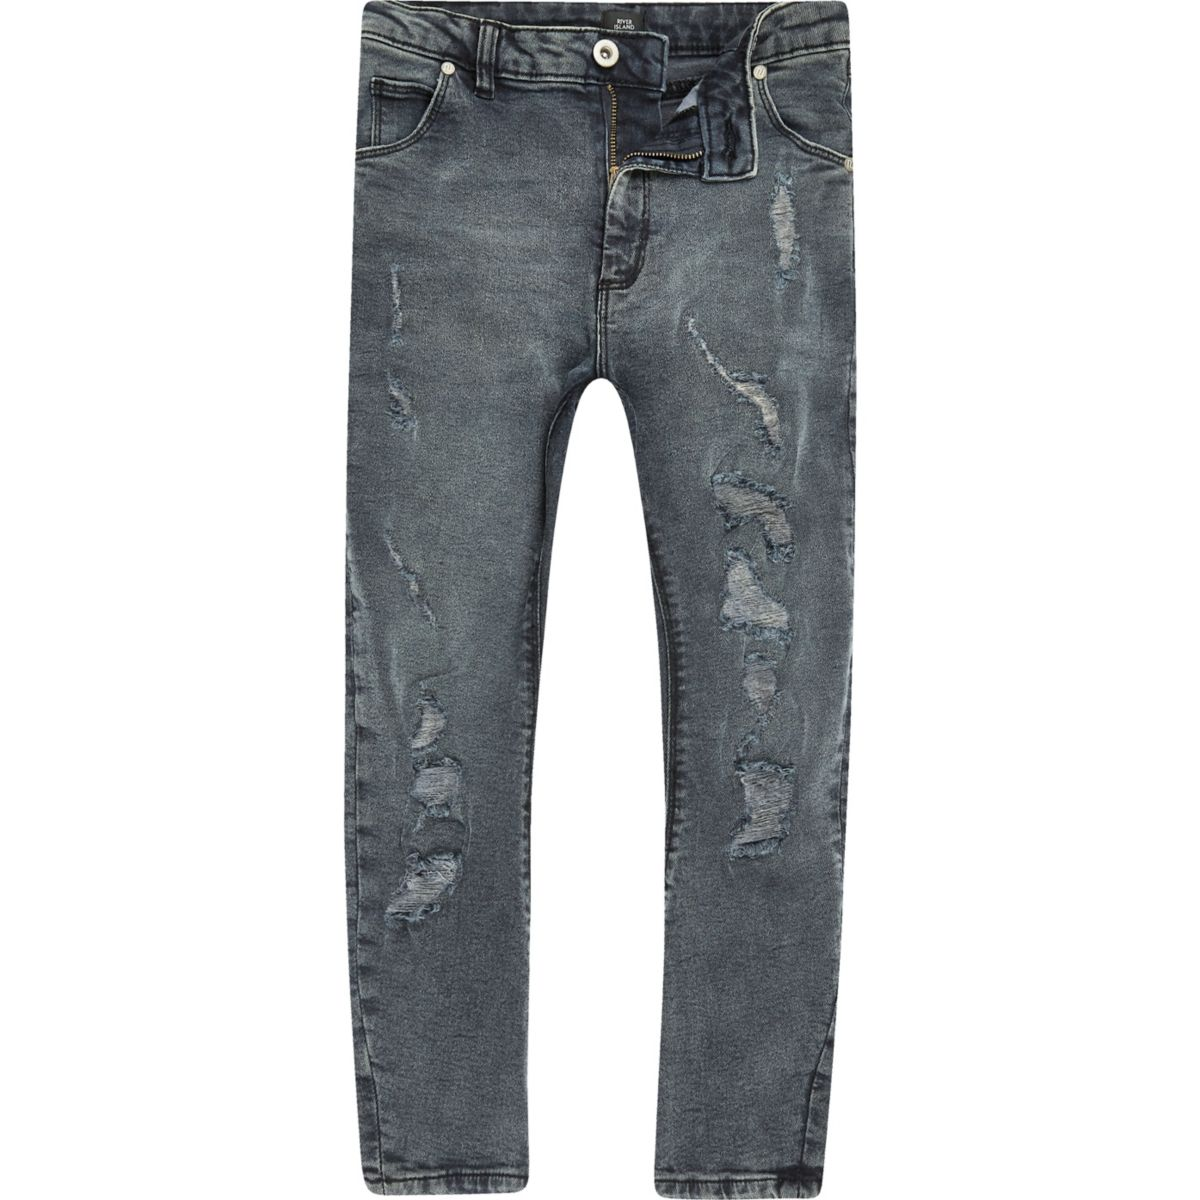 Boys dark denim Tony ripped jeans